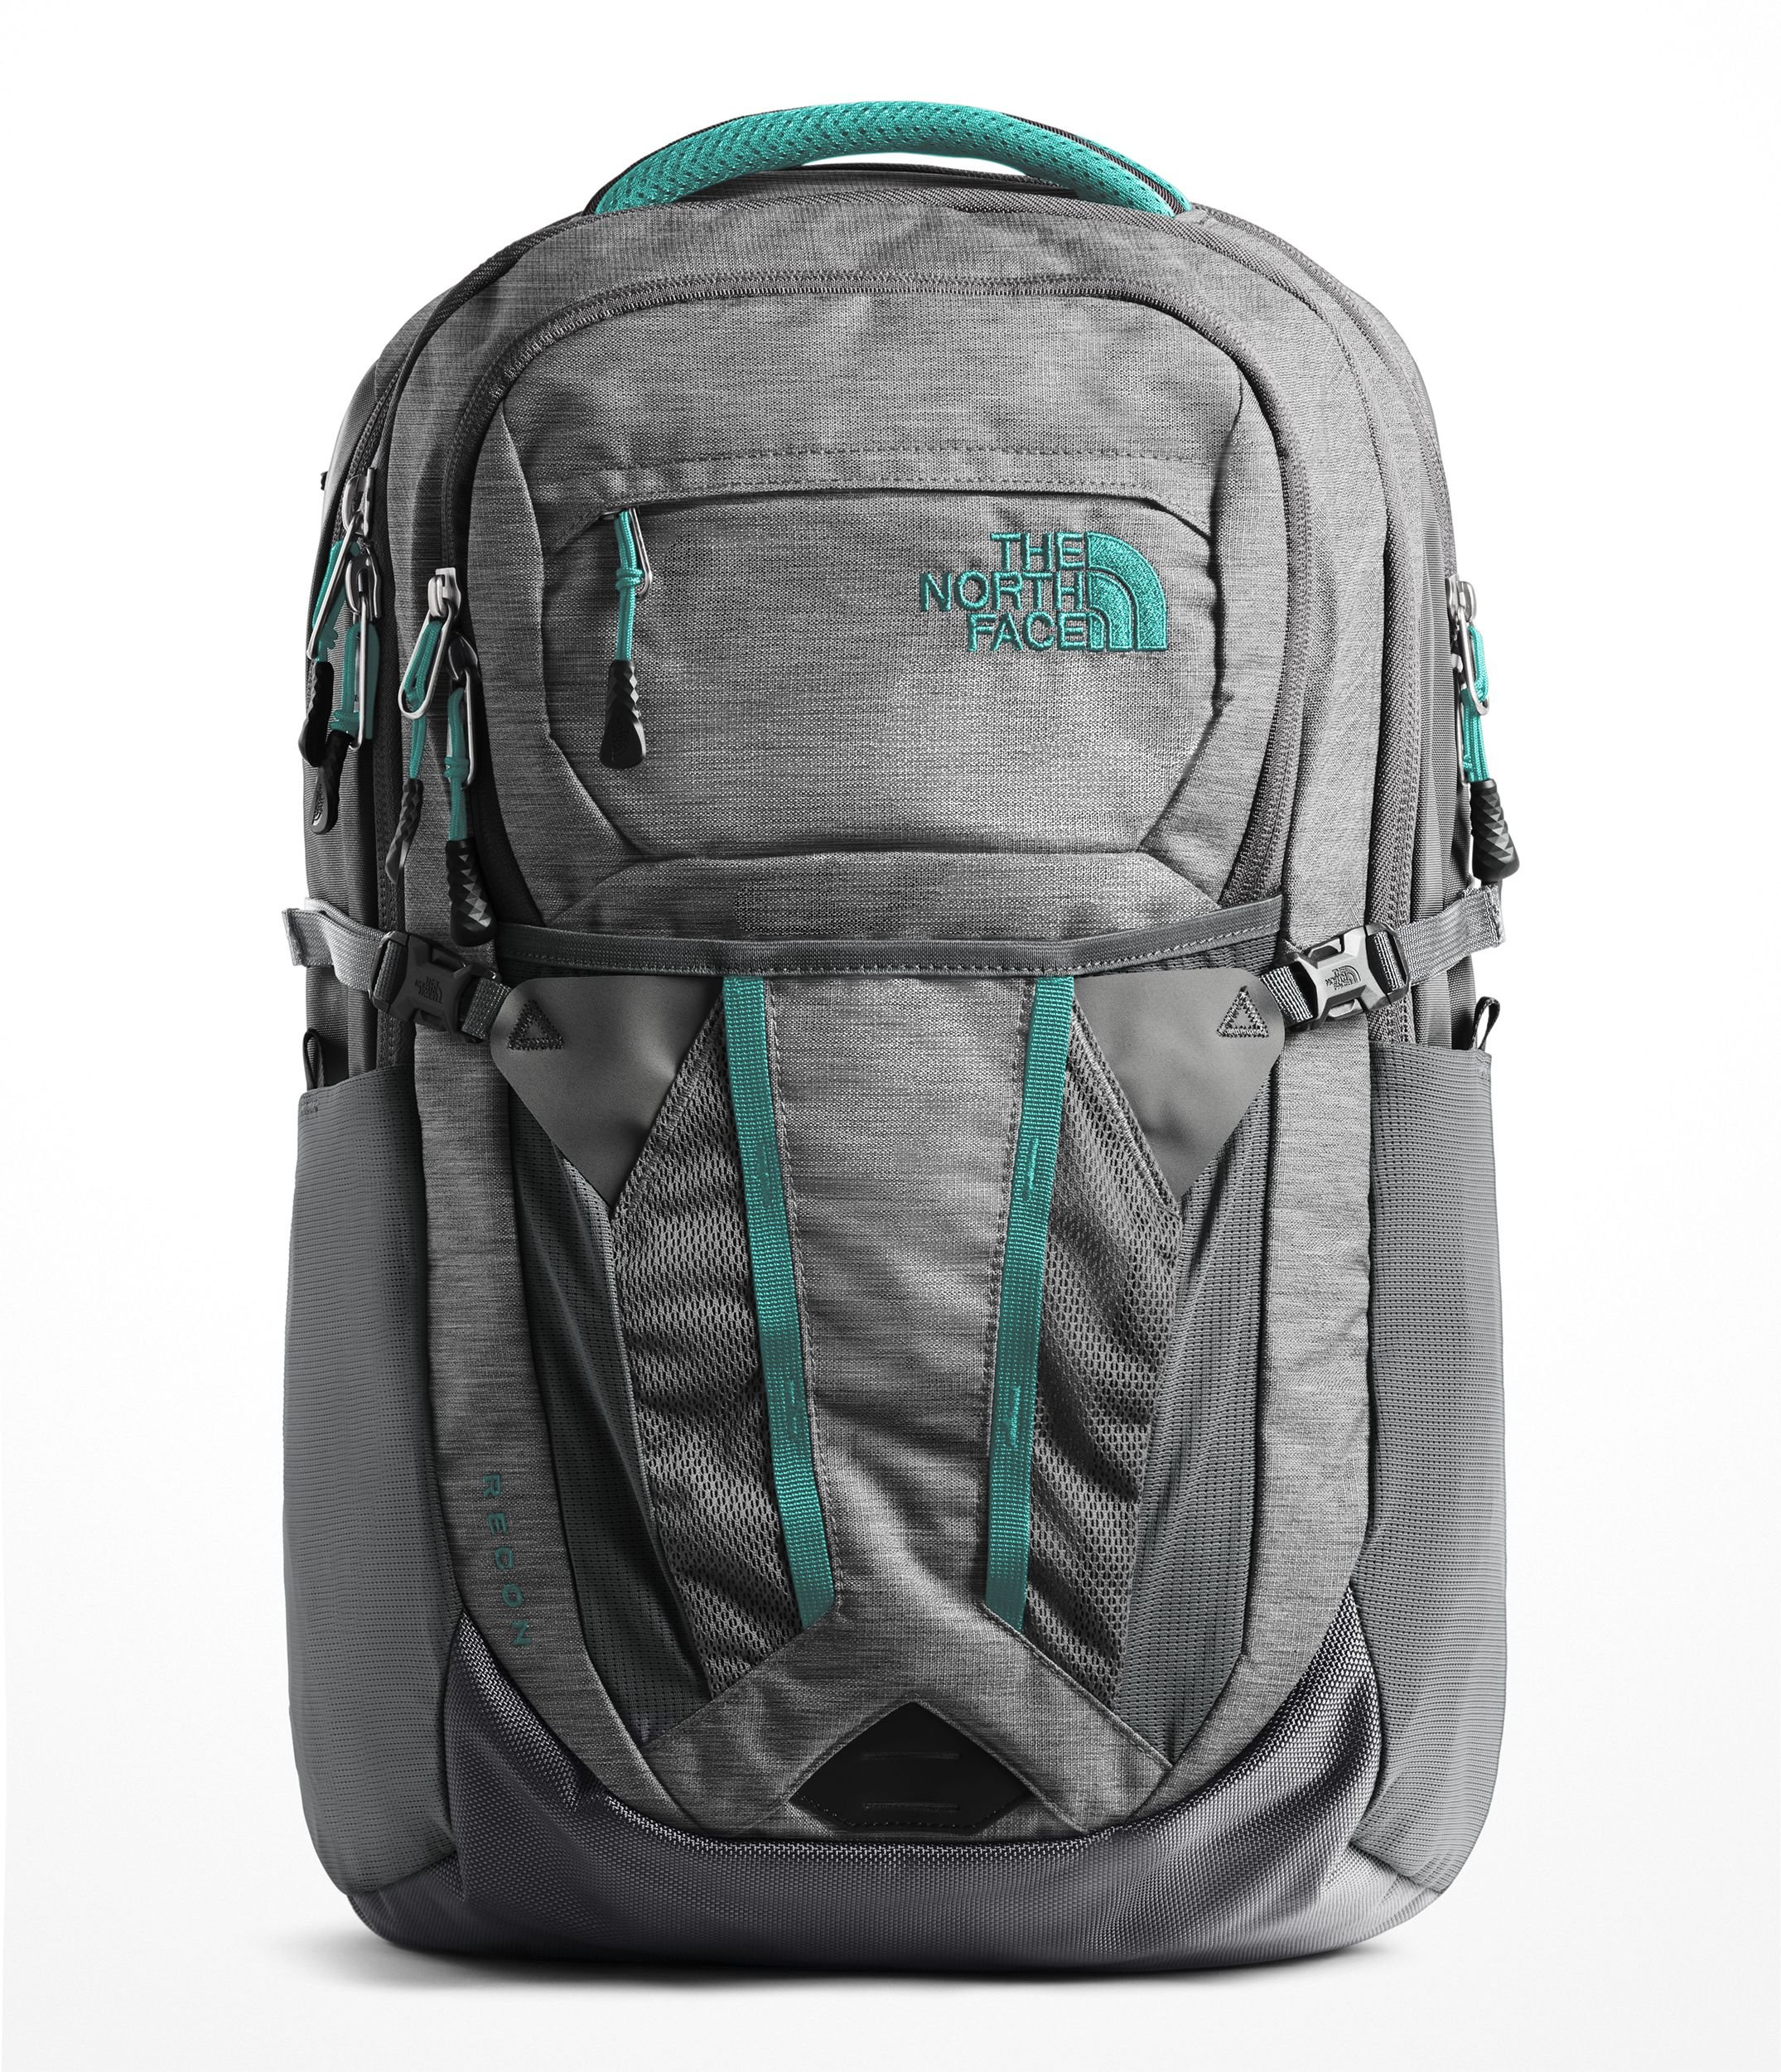 549cb2713d Galleon - The North Face Women s Recon Backpack